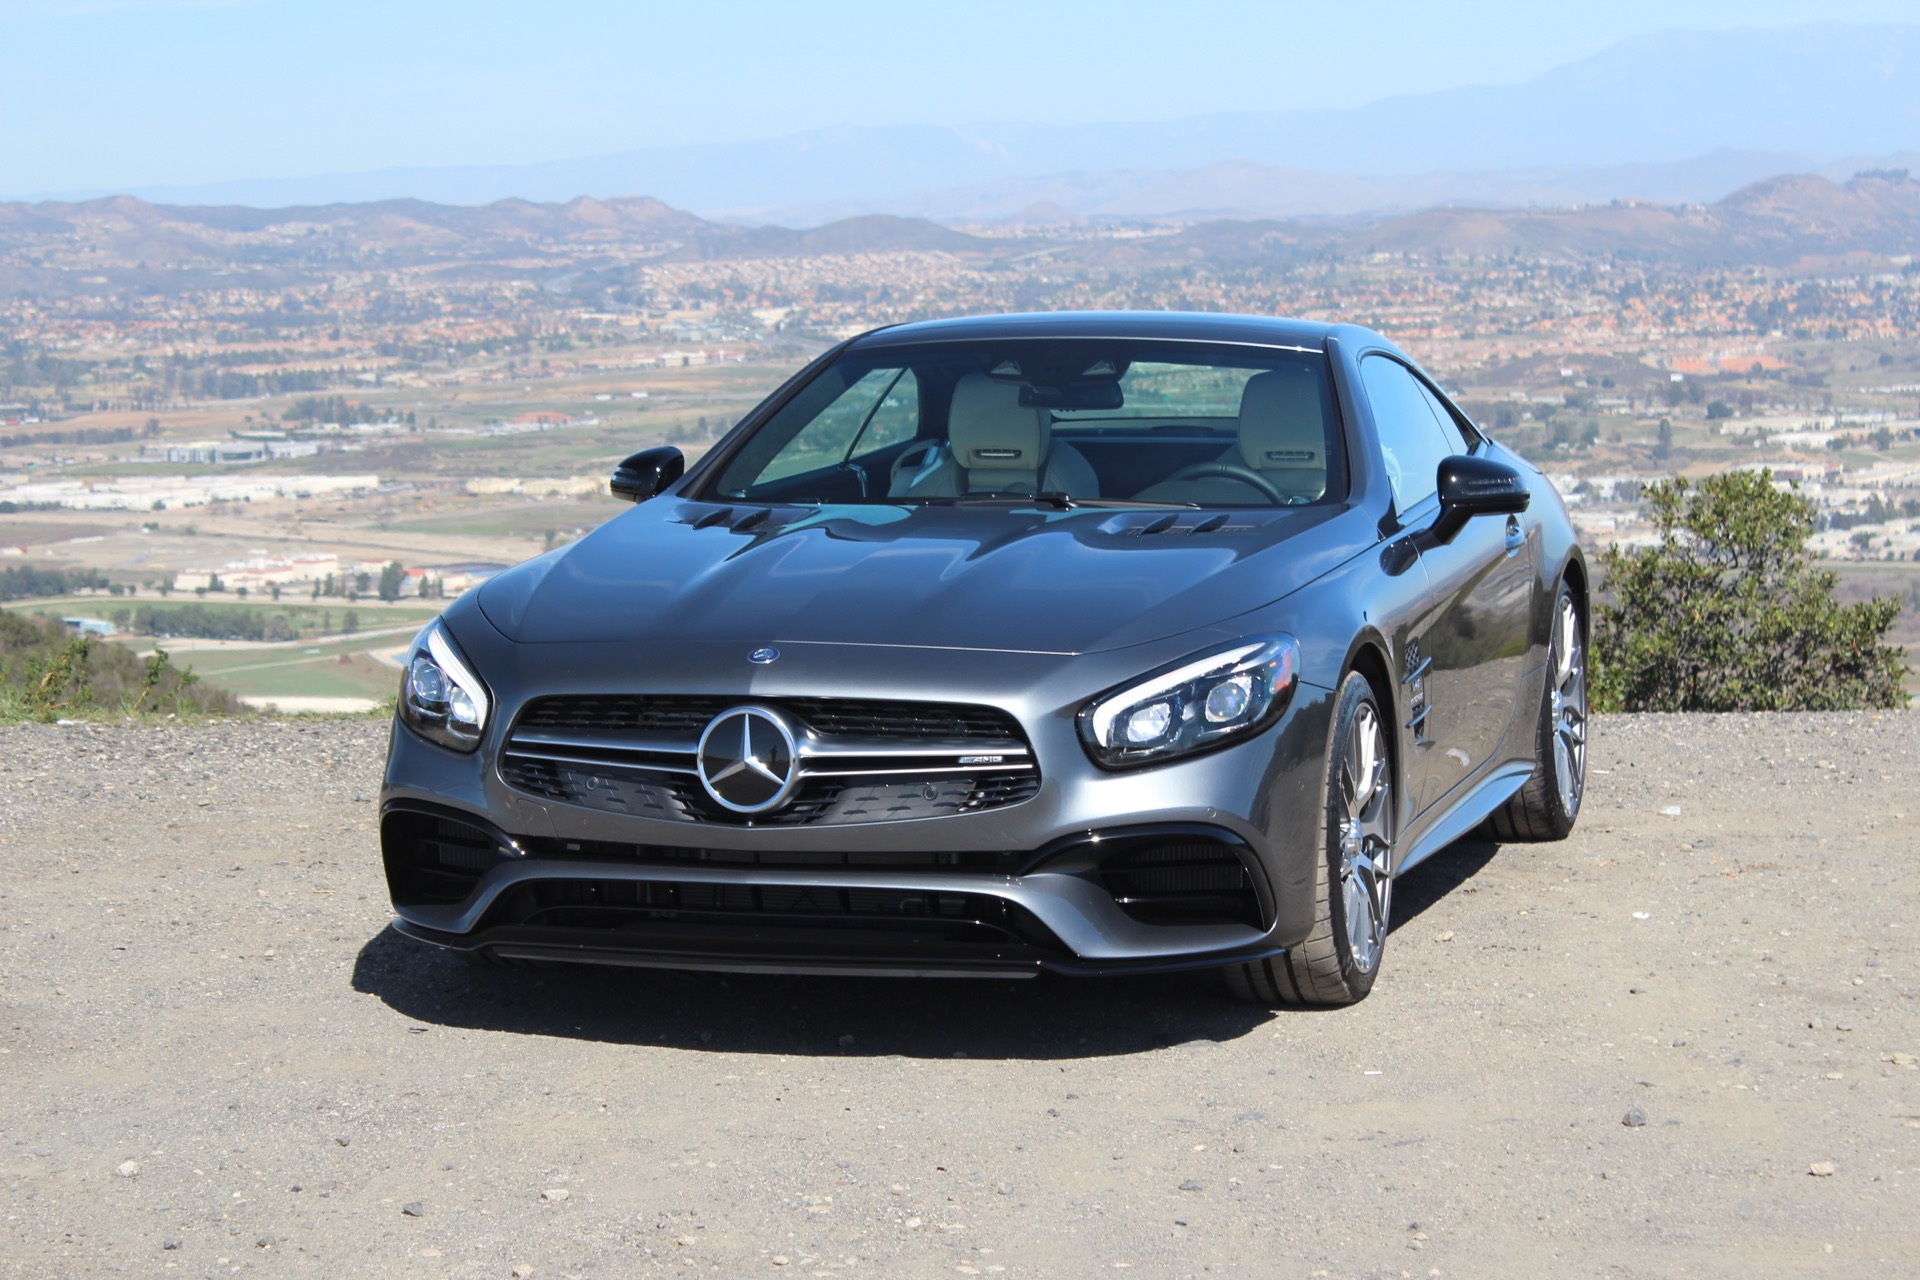 Mercedes Amg Discontinues Sl63 For 2020 Images, Photos, Reviews